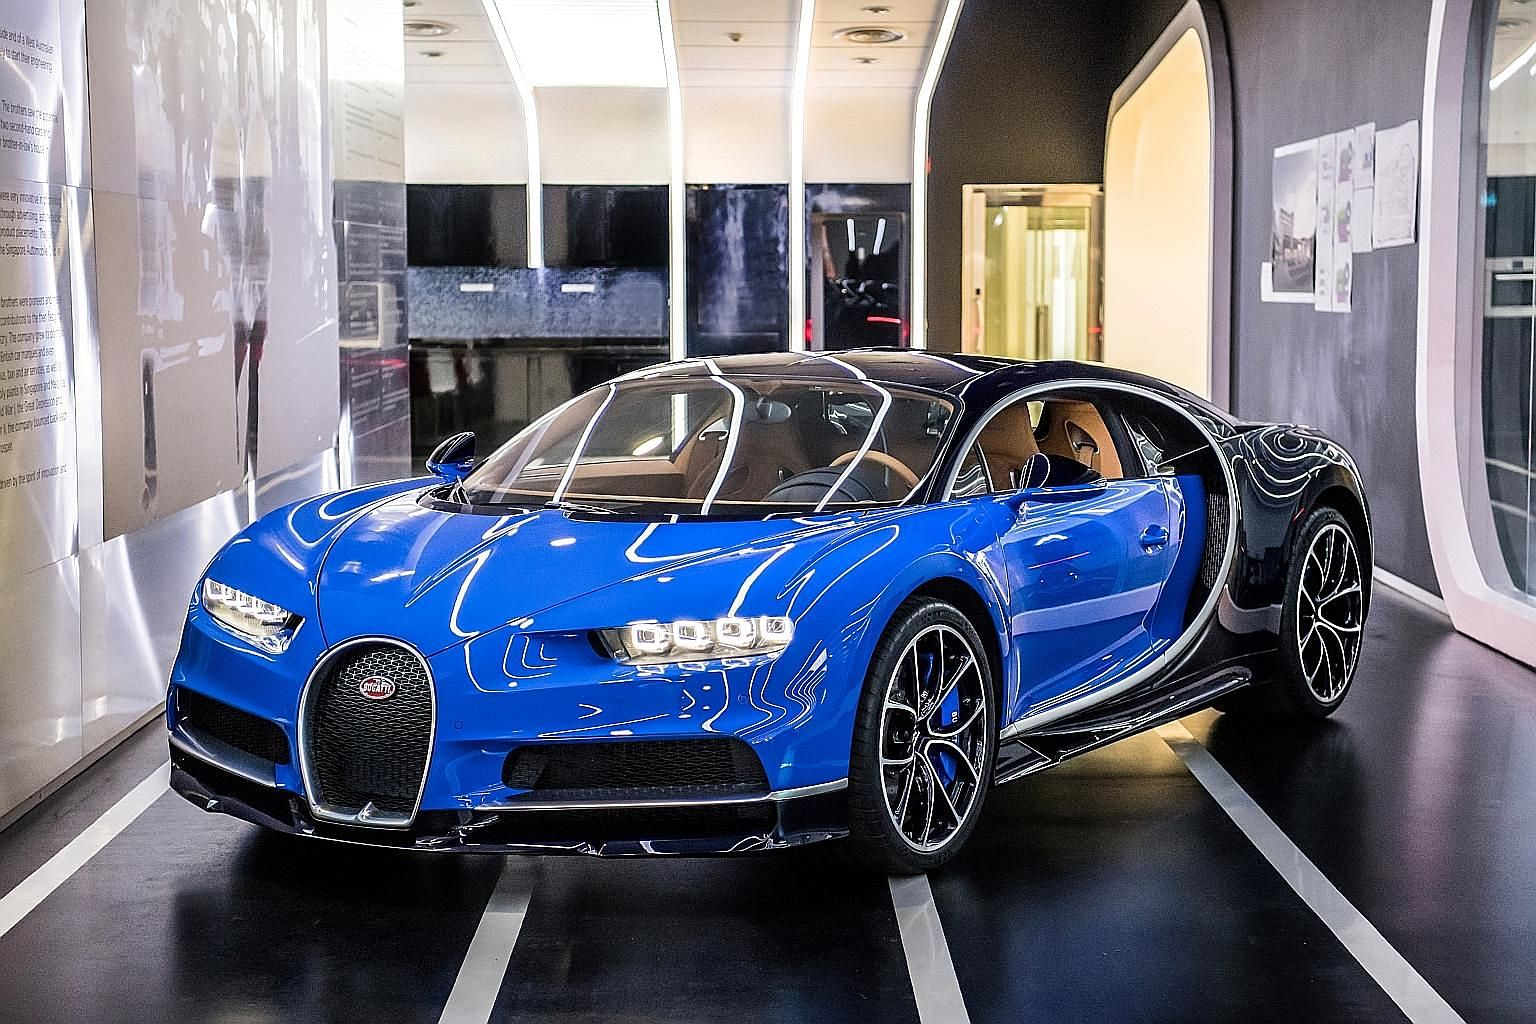 """To tap on the growing """"crazy rich Asian"""" market, Wearnes Automotive will add Koenigsegg (left) and Pininfarina (above) to its hypercar stable later this year. The powerful Bugatti Chiron (above and left) costs €2.4 million to €2.5 million."""